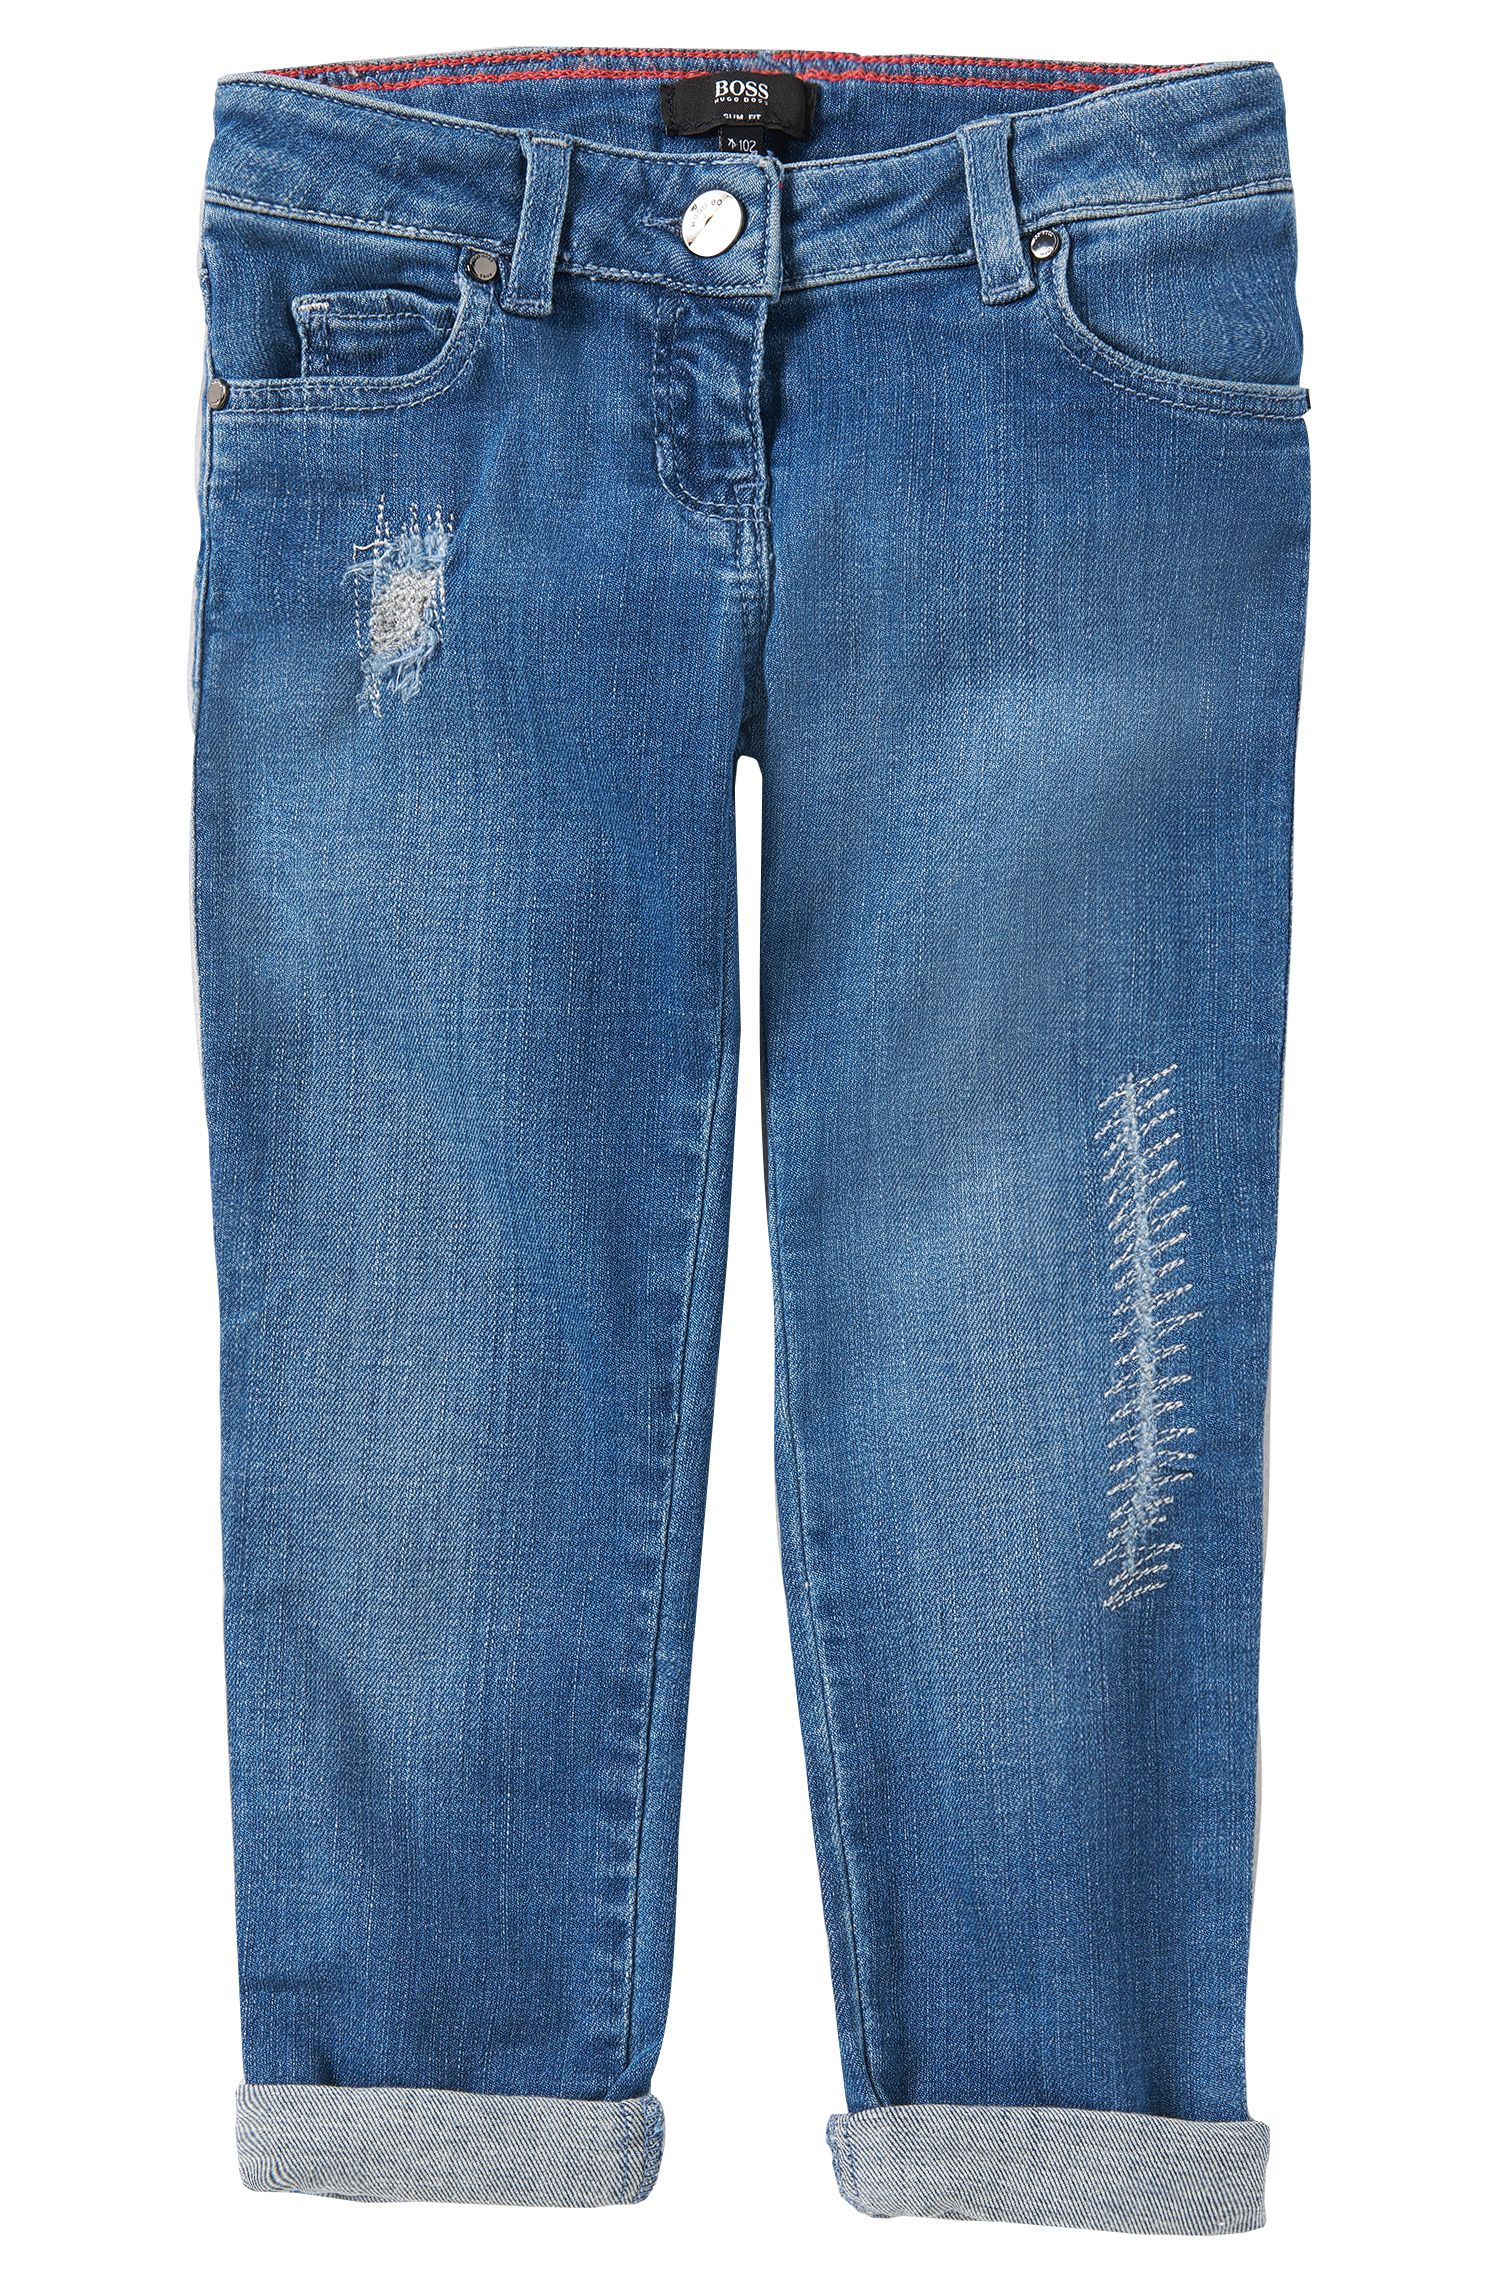 Slim-Fit Jeans aus Baumwoll-Mix: 'J14155'